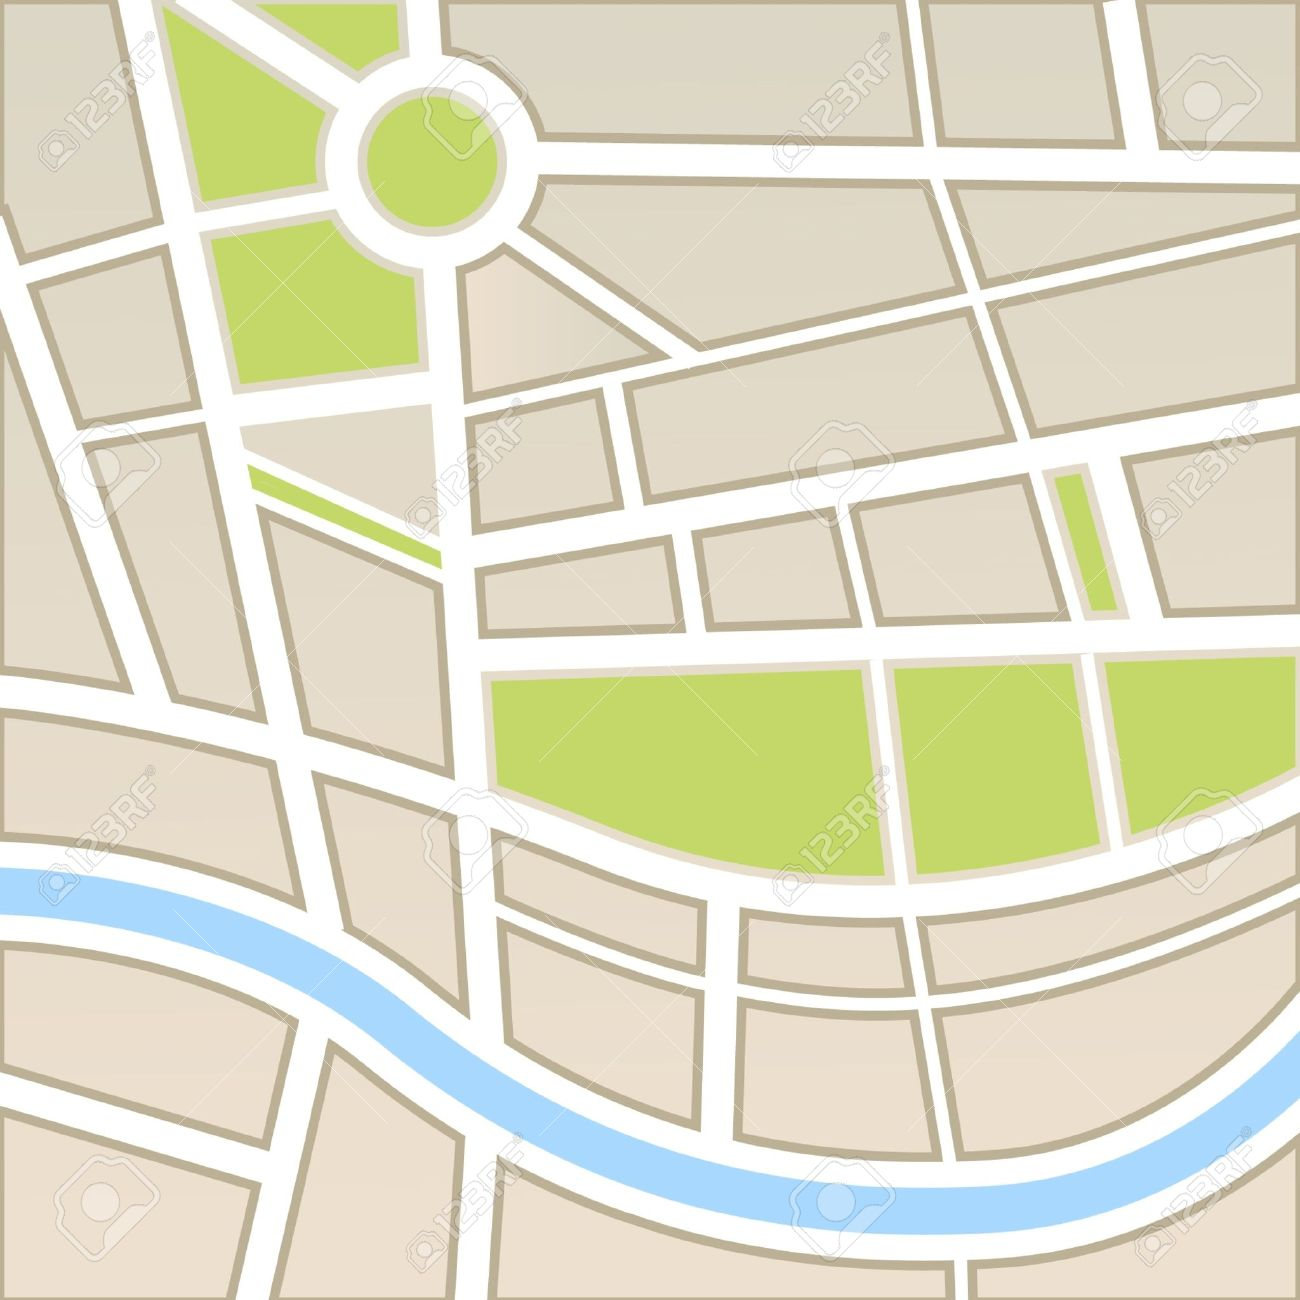 City Map Vector Free Background of City Map Vector